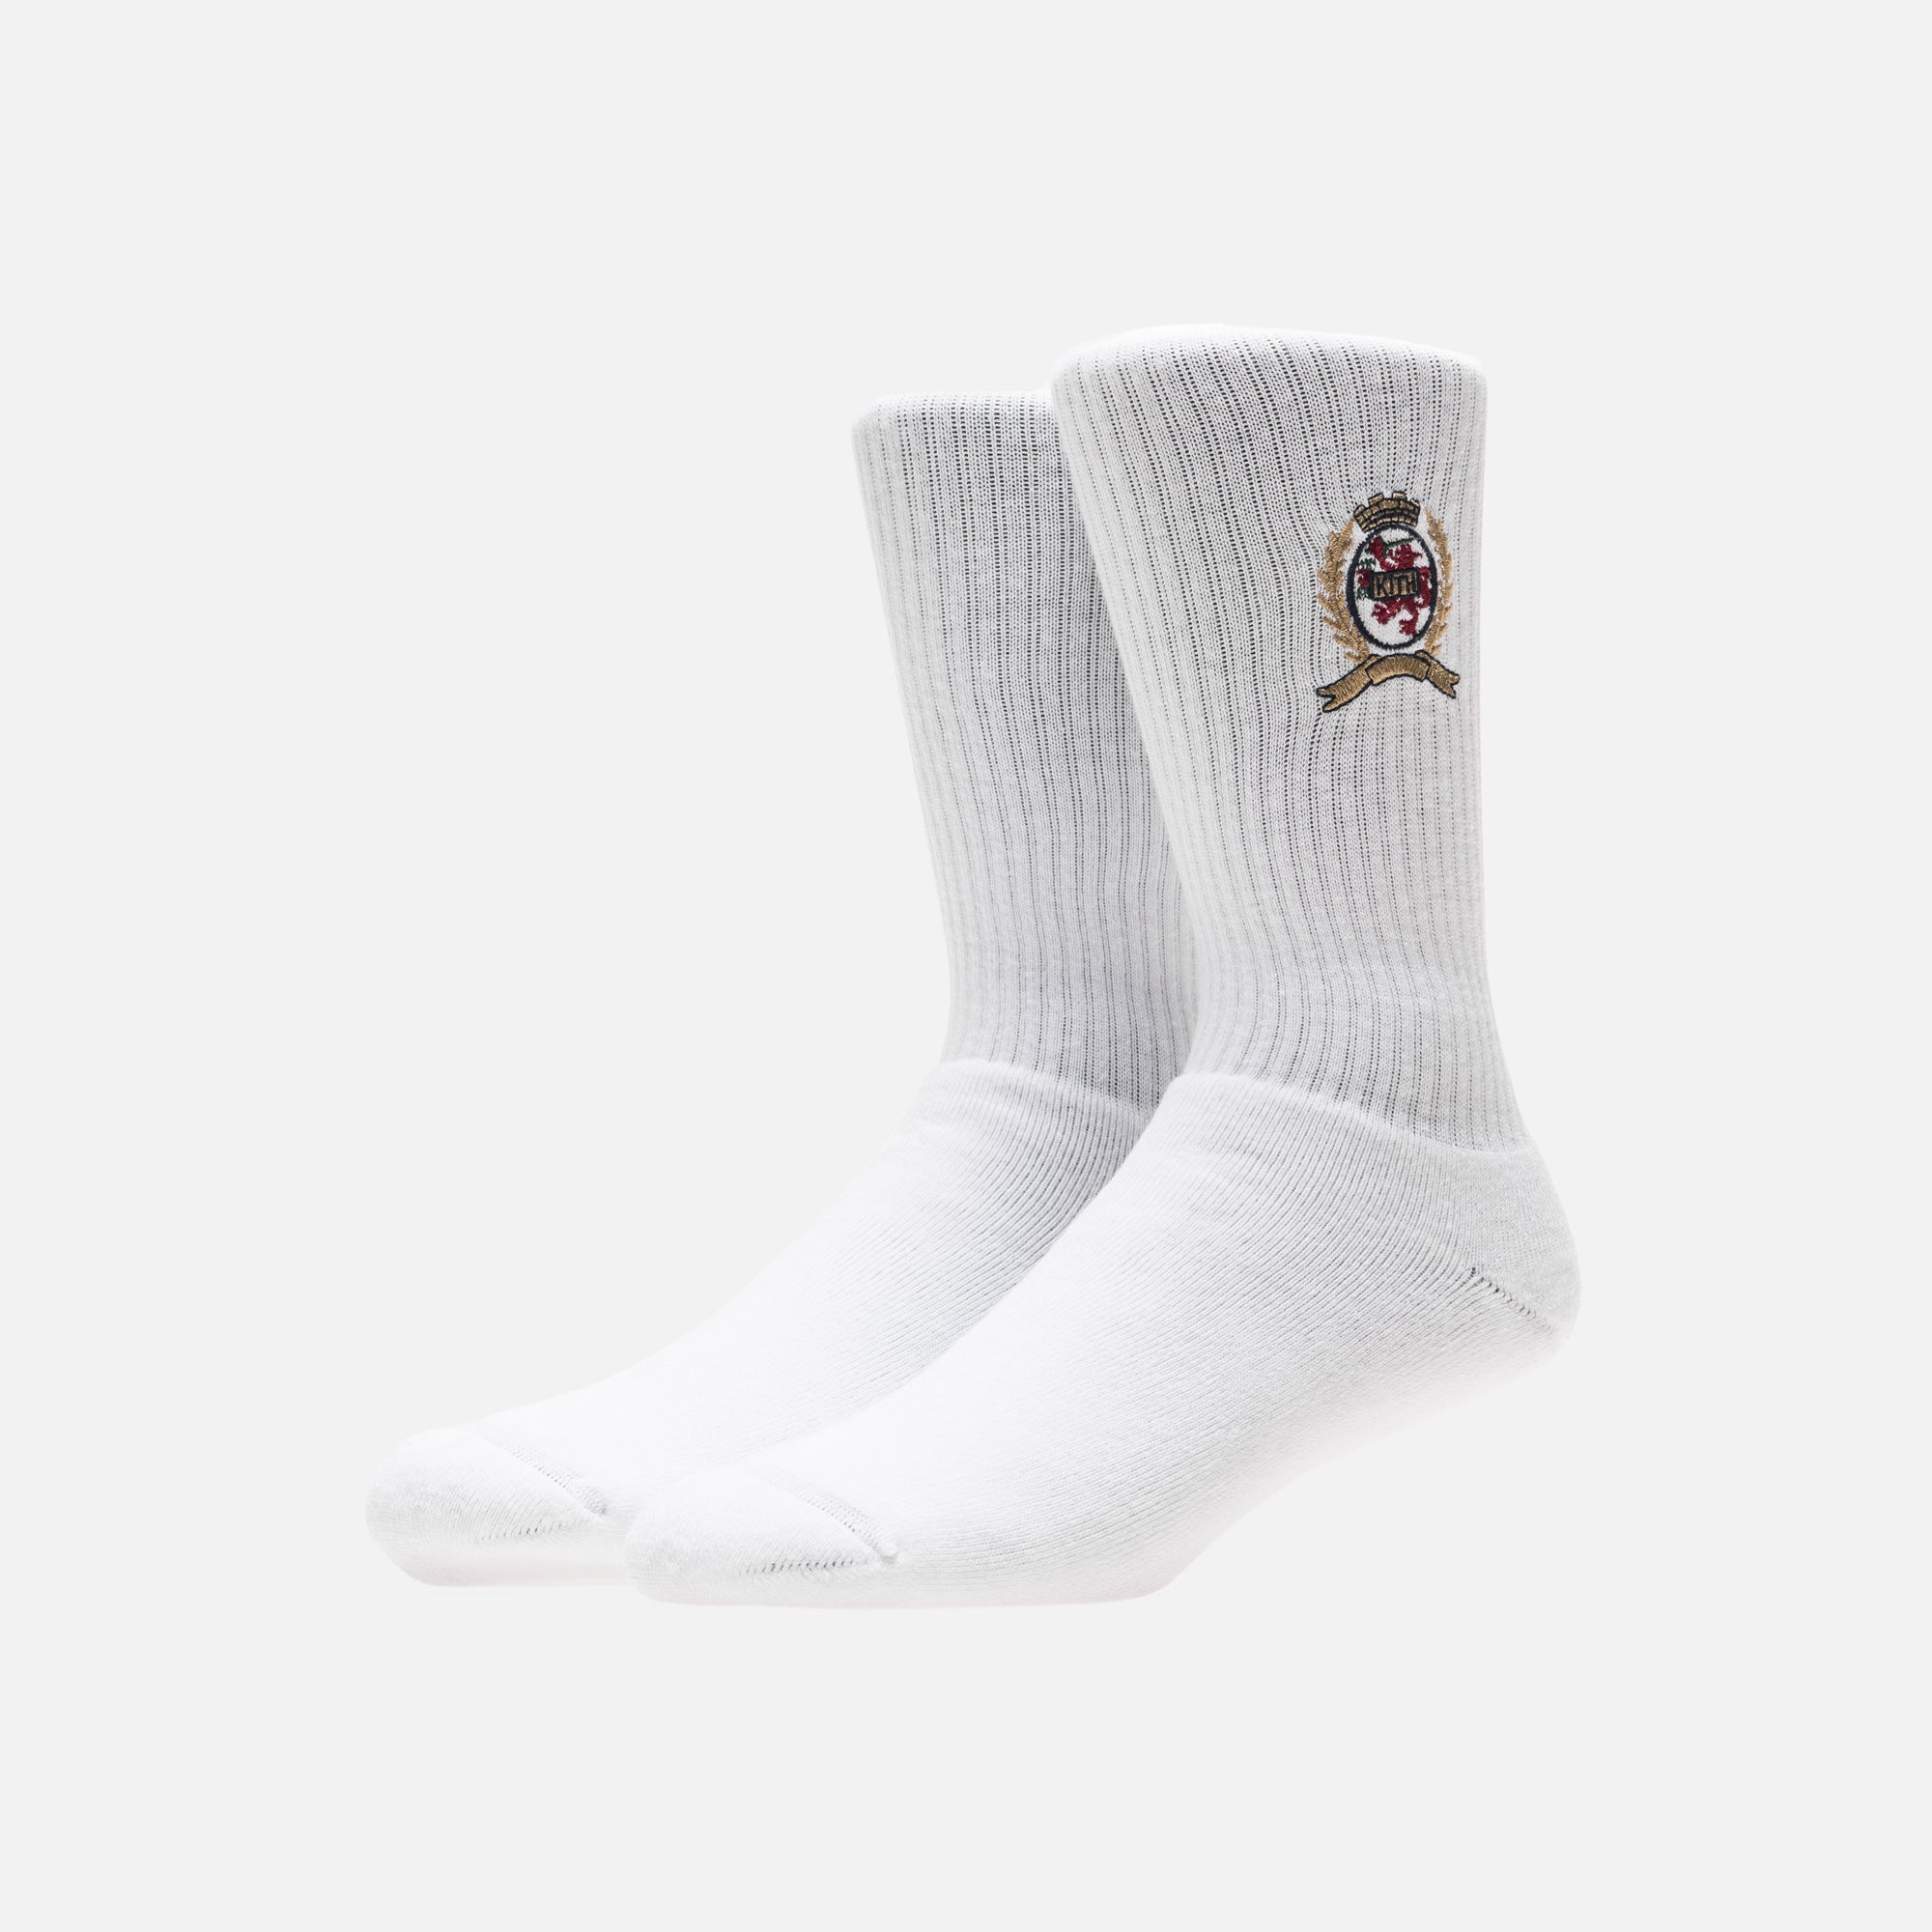 Kith x Tommy Hilfiger Rib Knit Socks - White